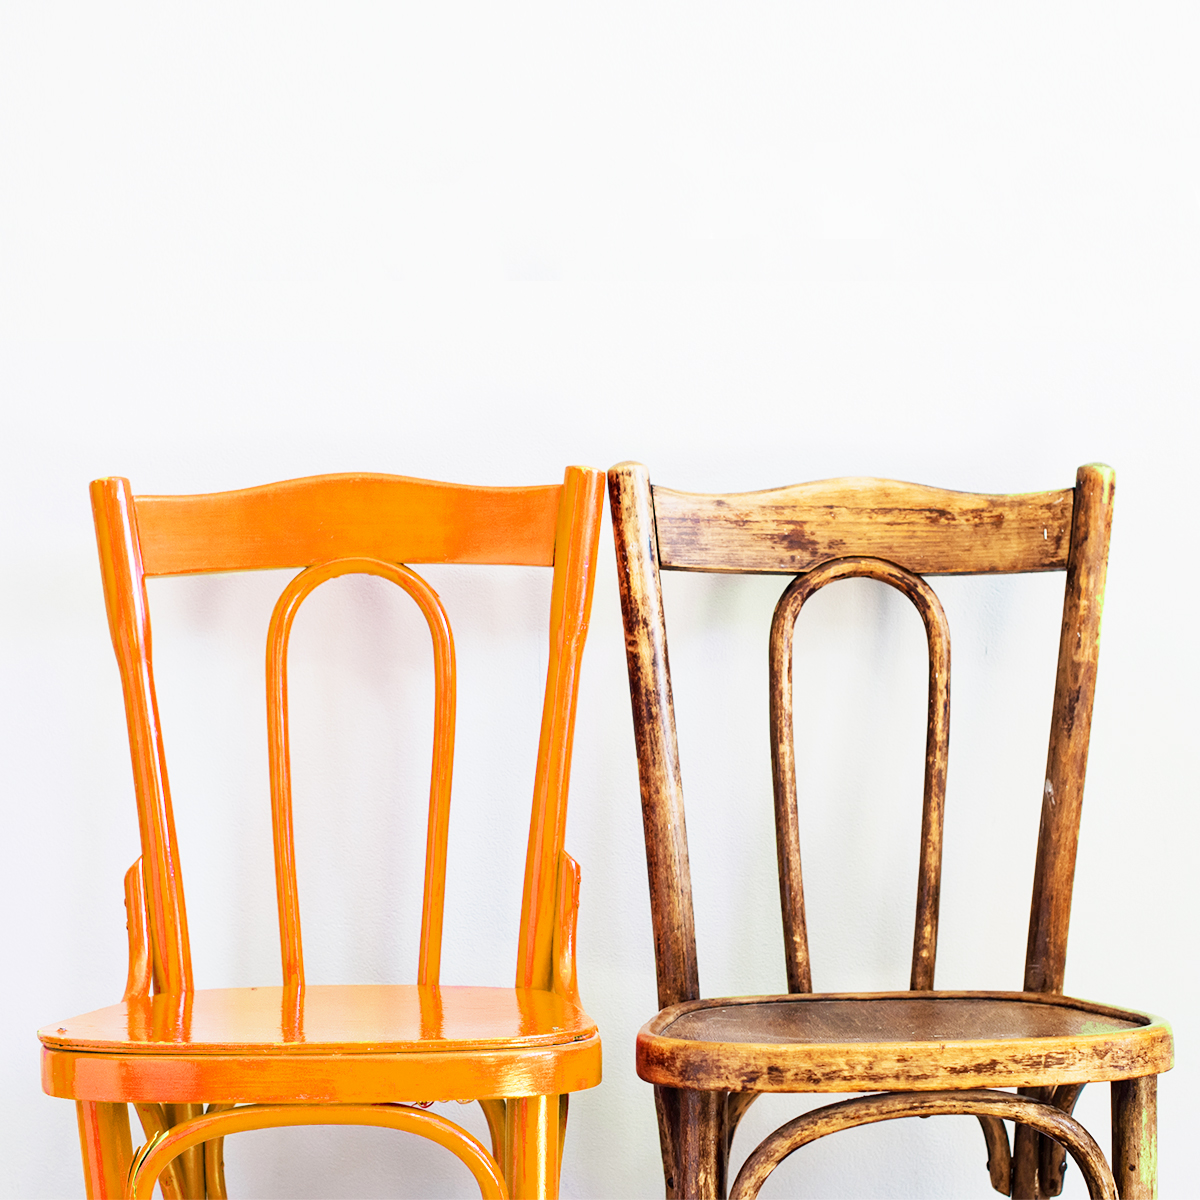 refinishing chairs with paint